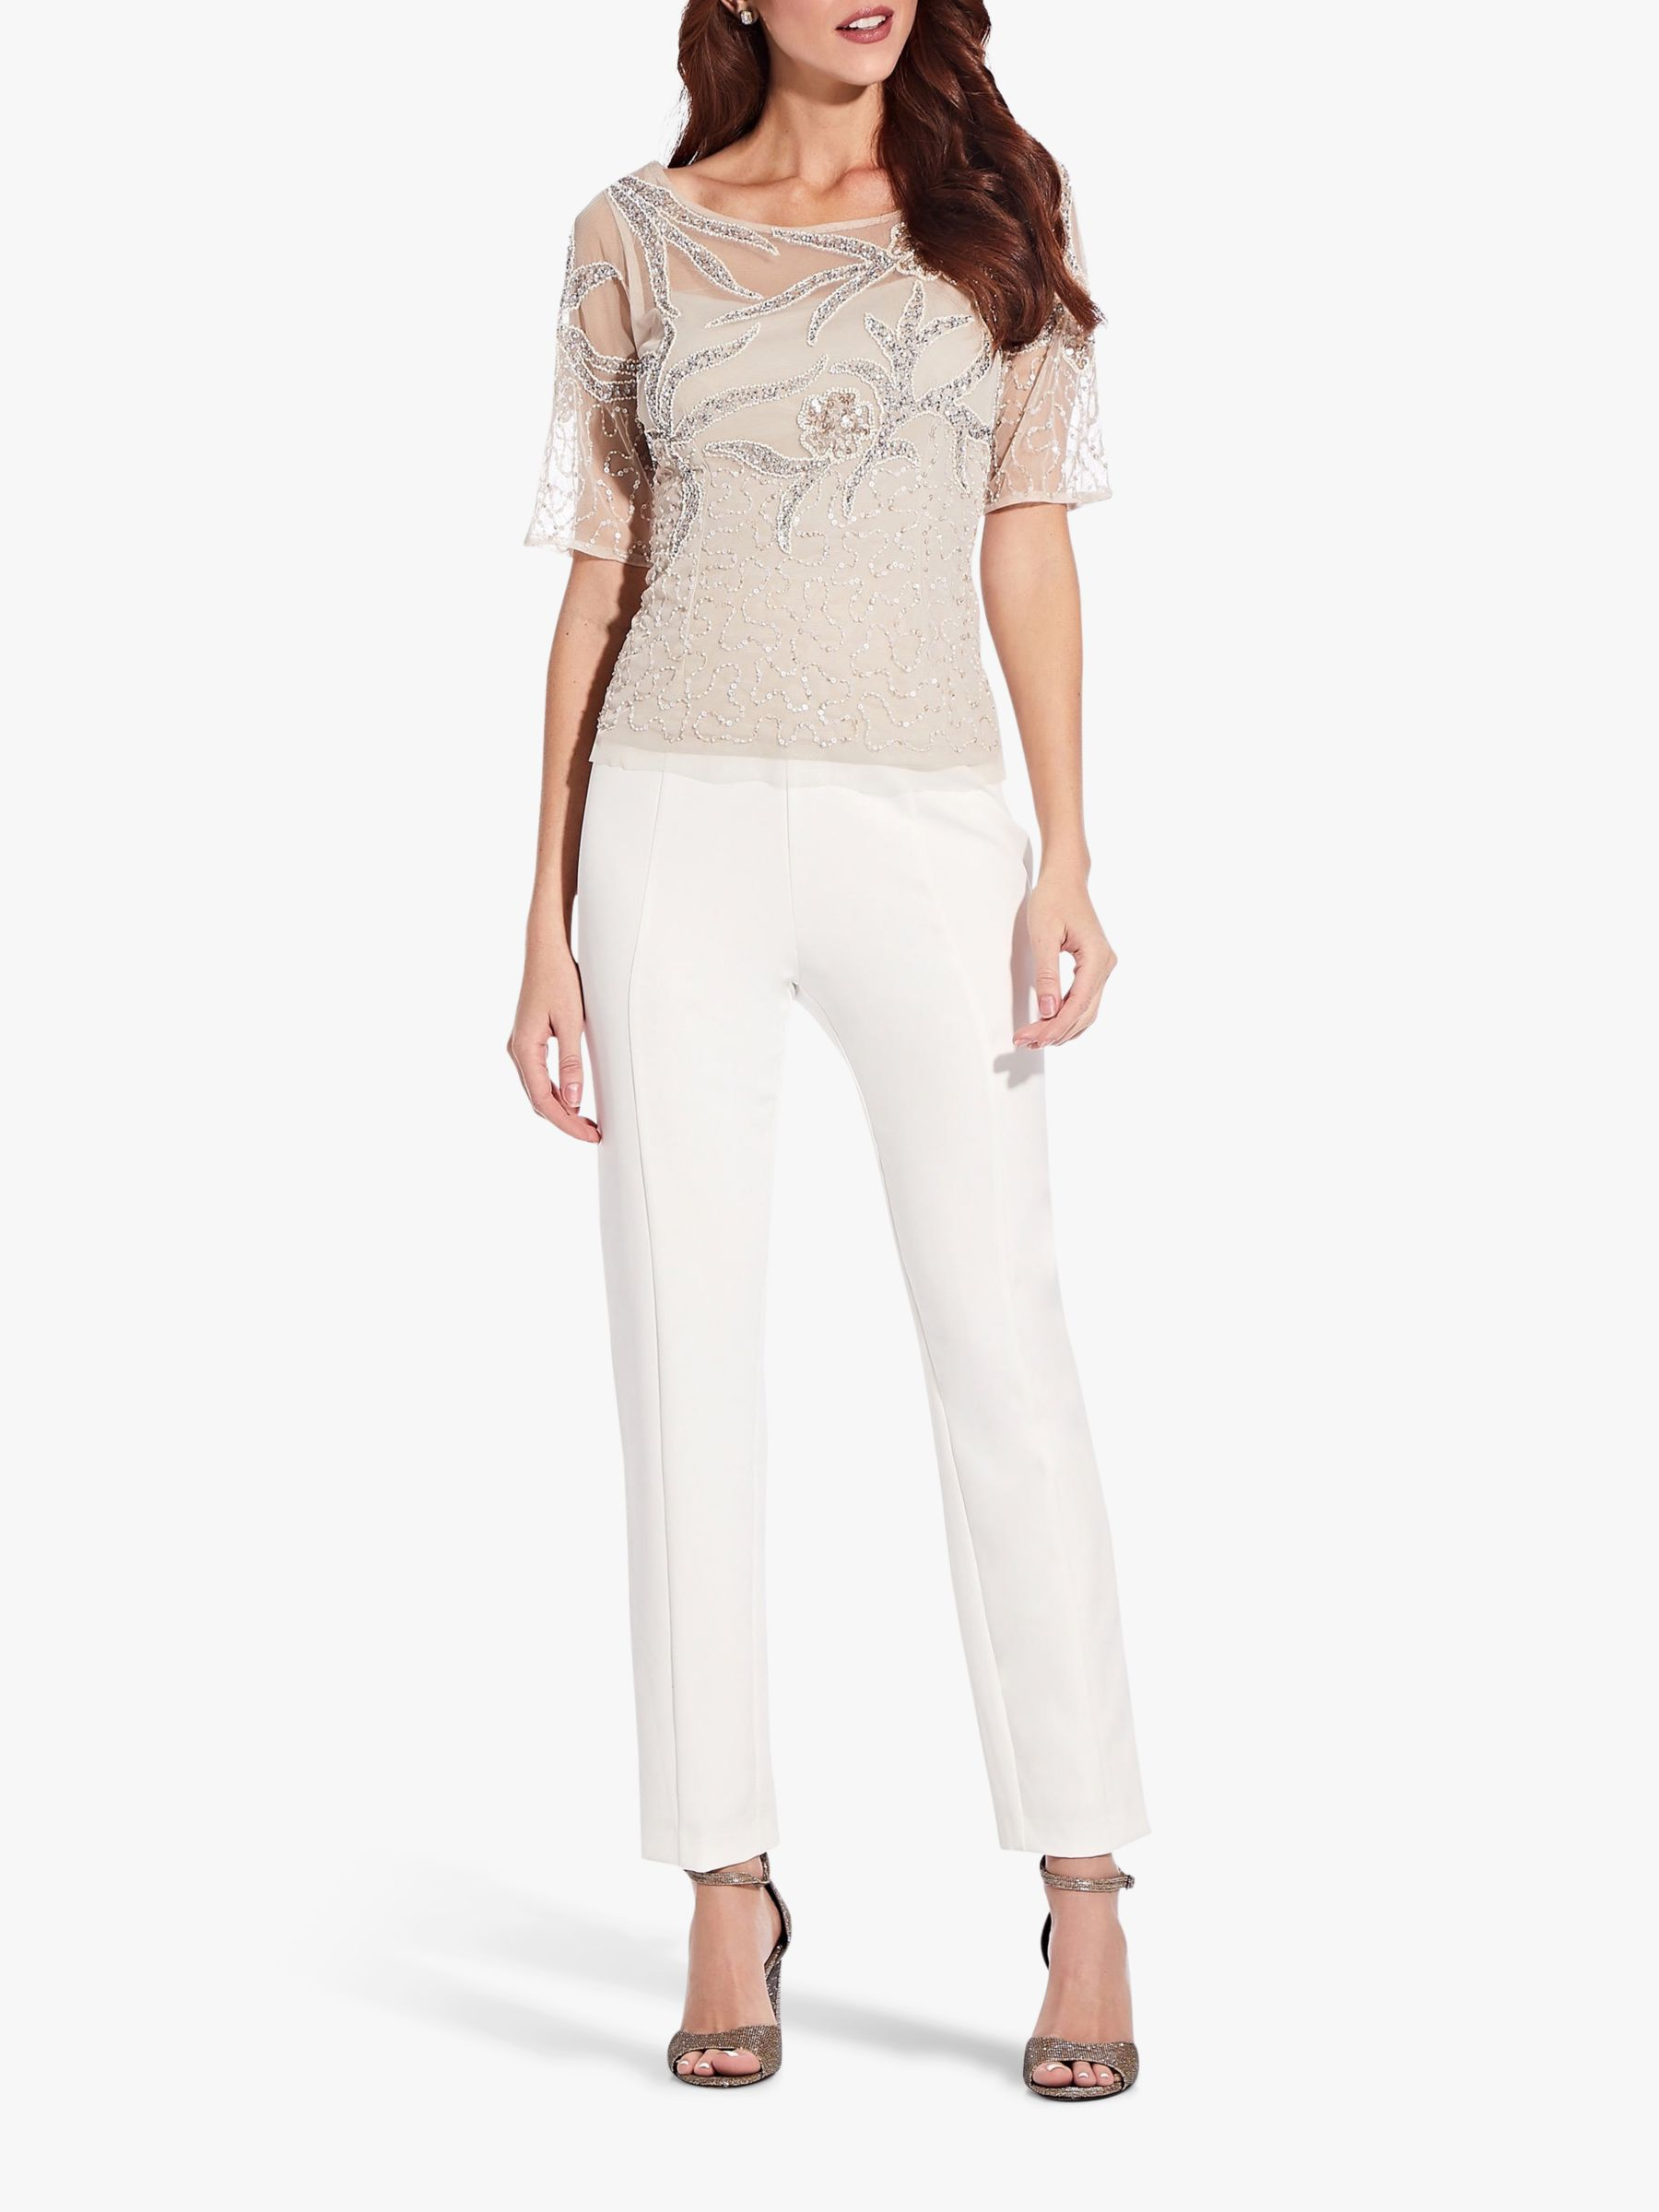 Adrianna Papell Adrianna Papell Beaded Illusion Top, Biscotti